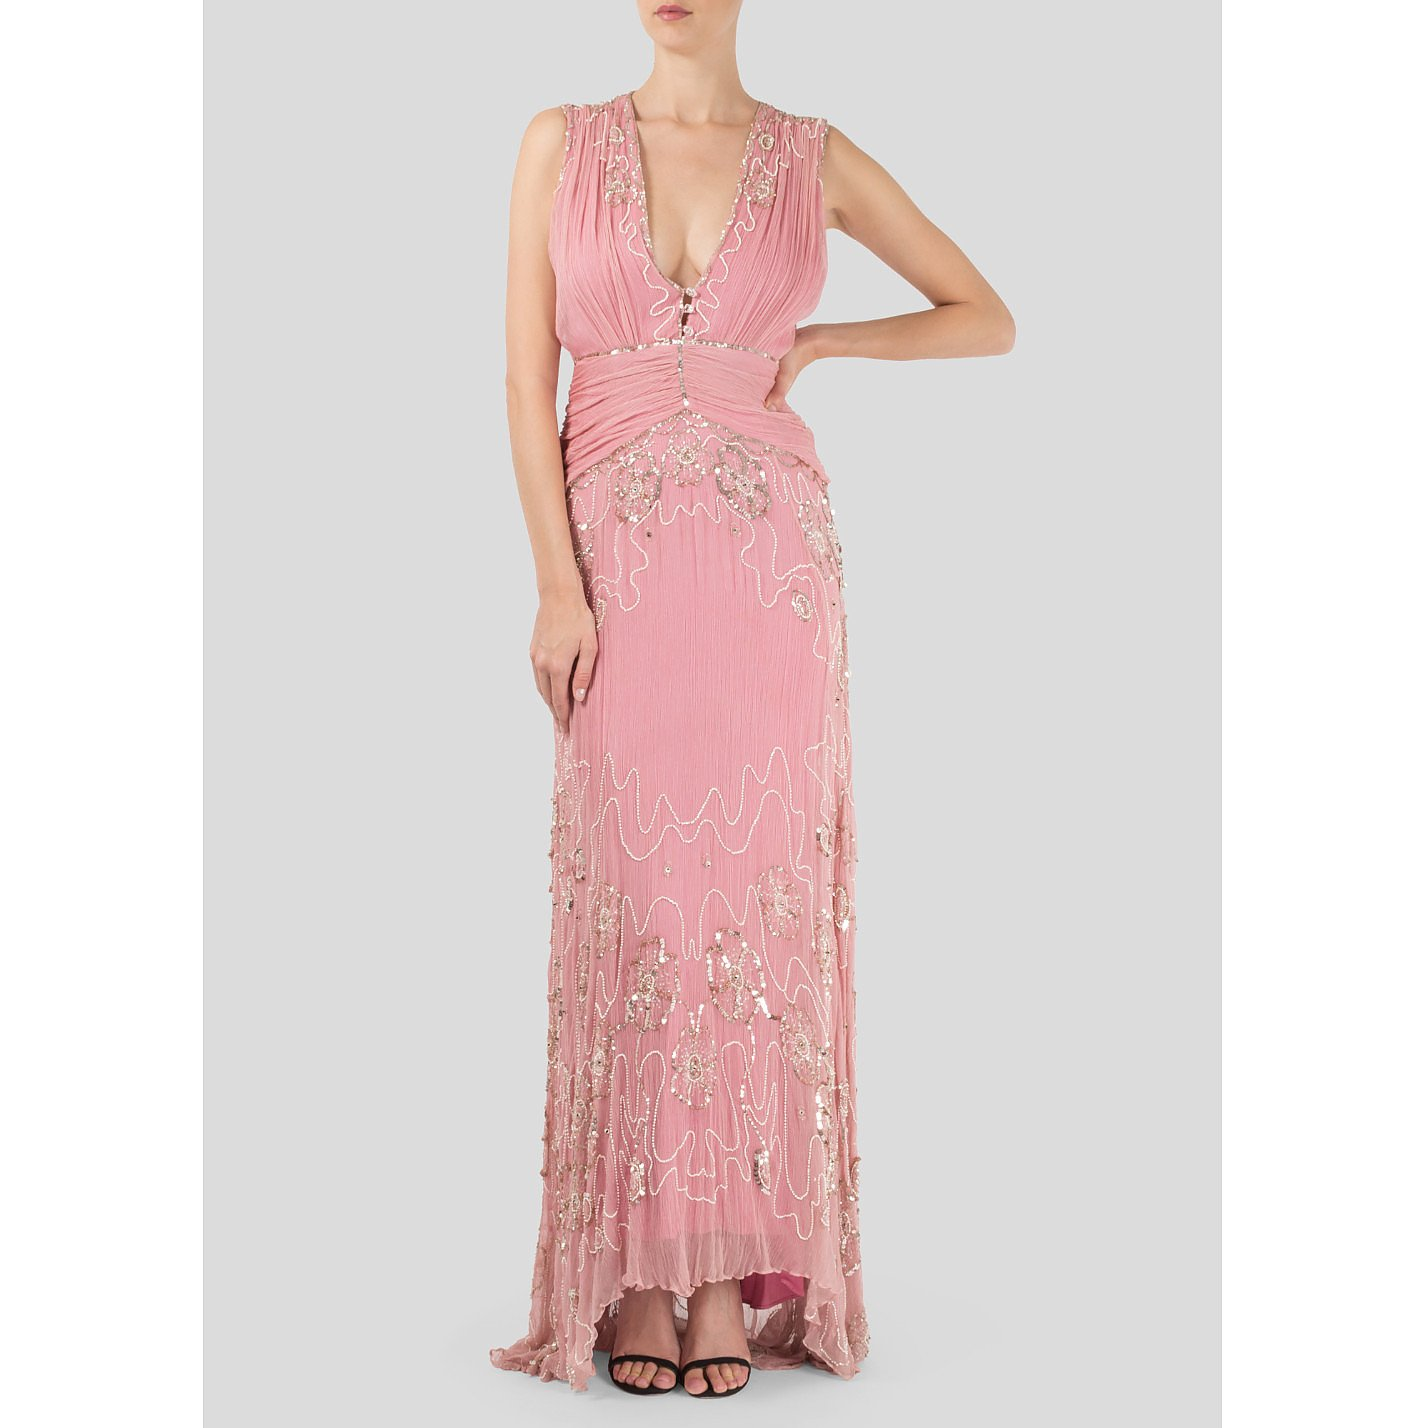 Temperley London Embellished Sleeveless Gown